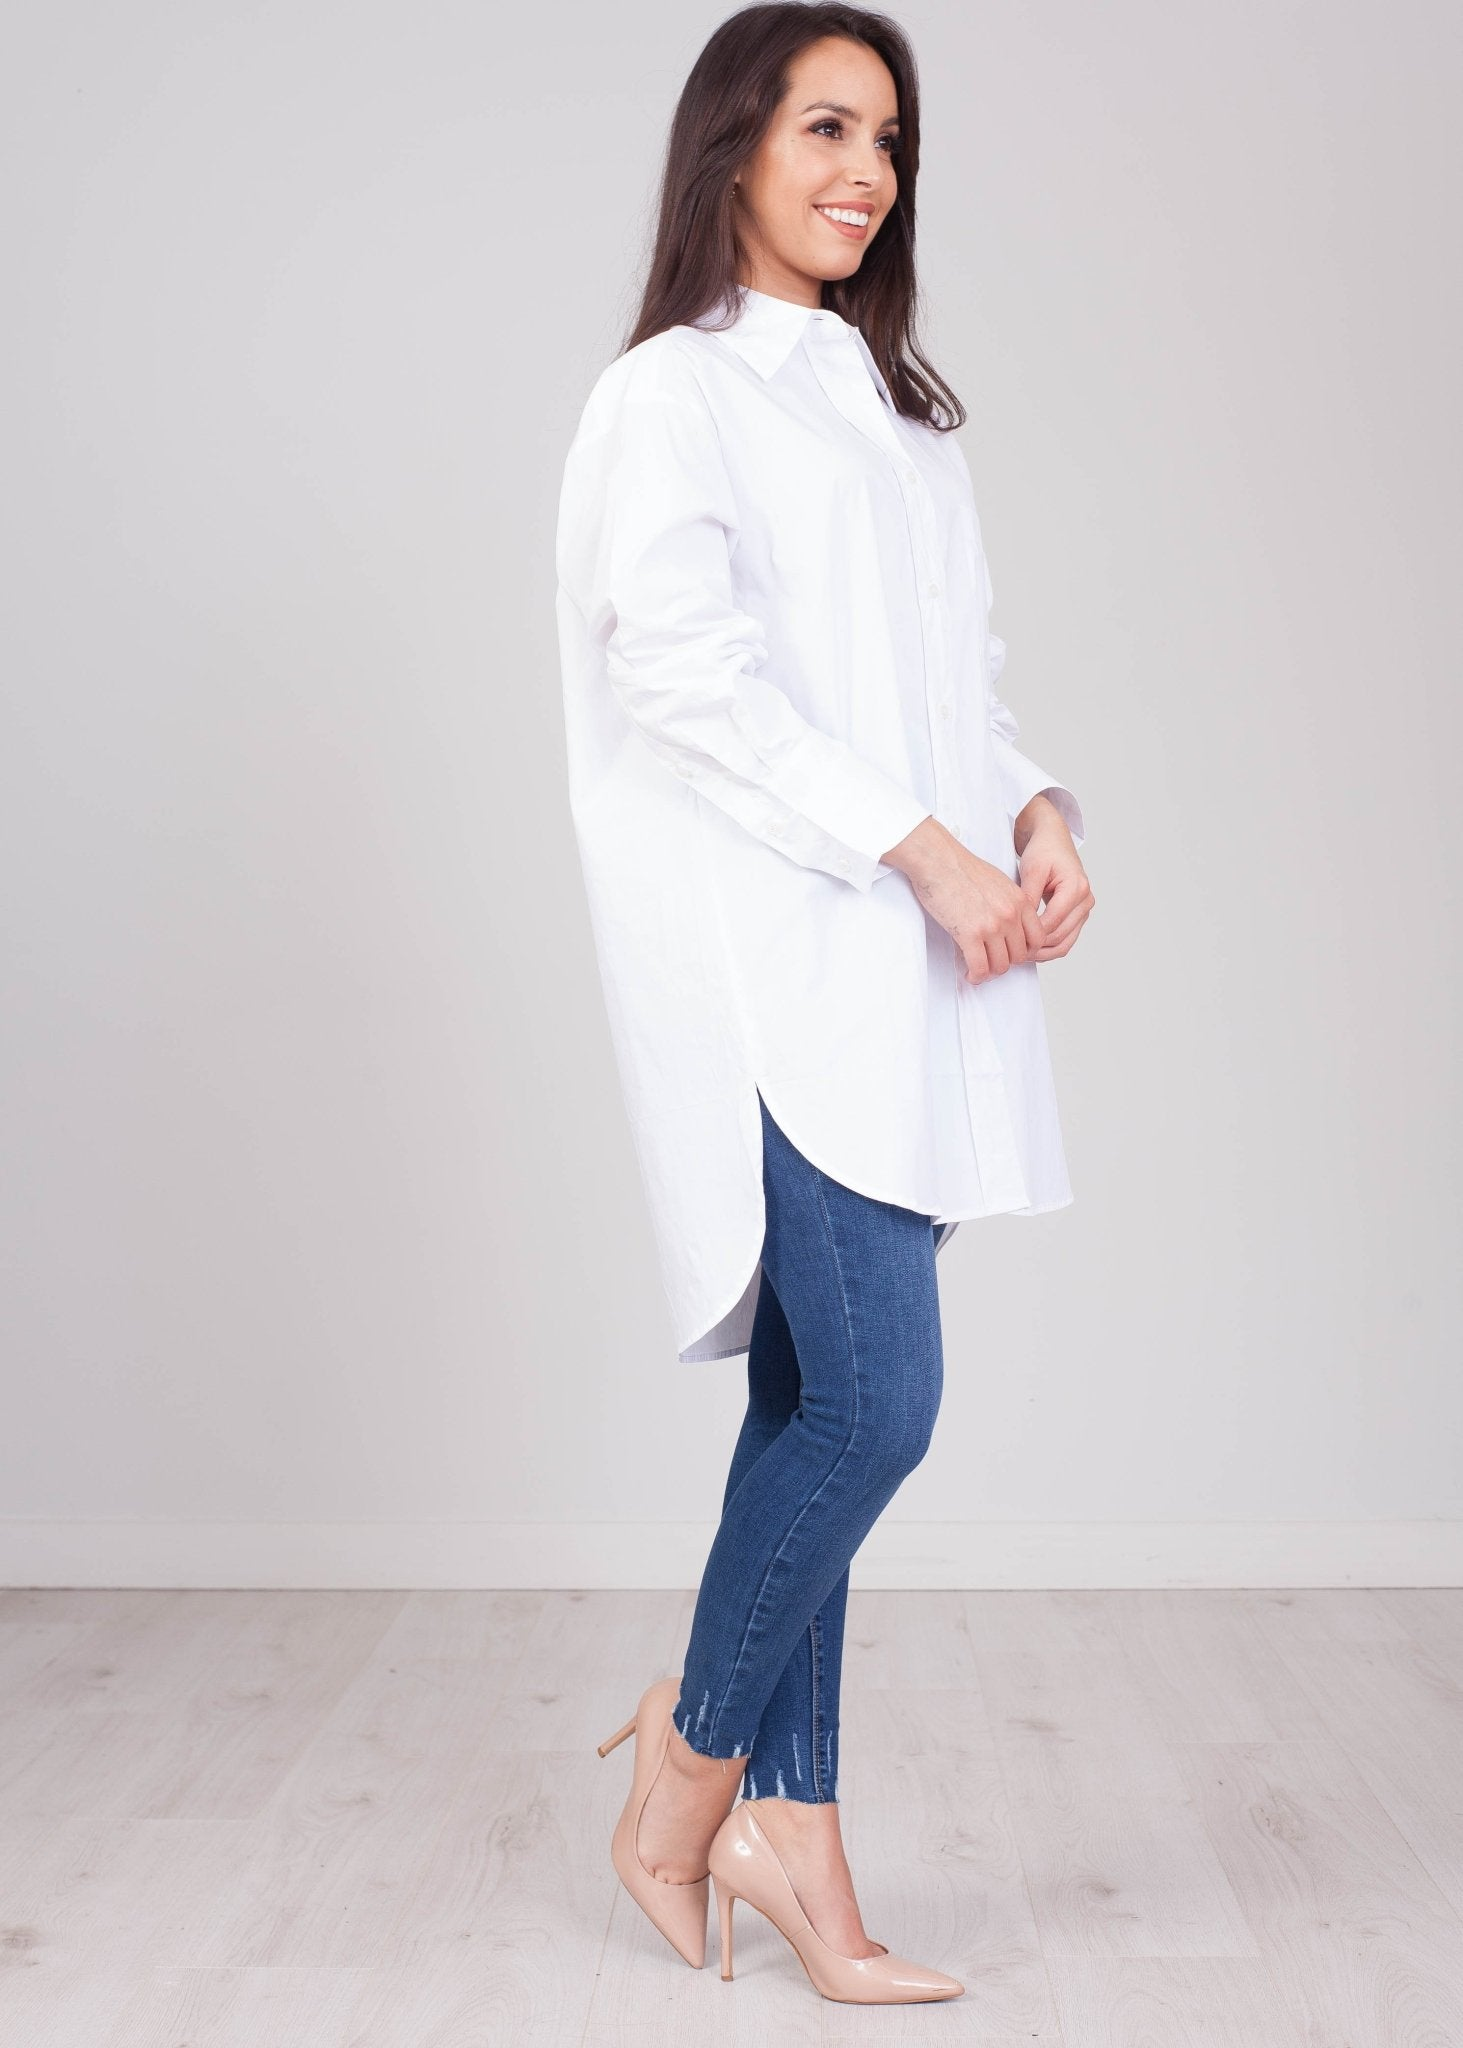 Emilia Oversized White Shirt - The Walk in Wardrobe